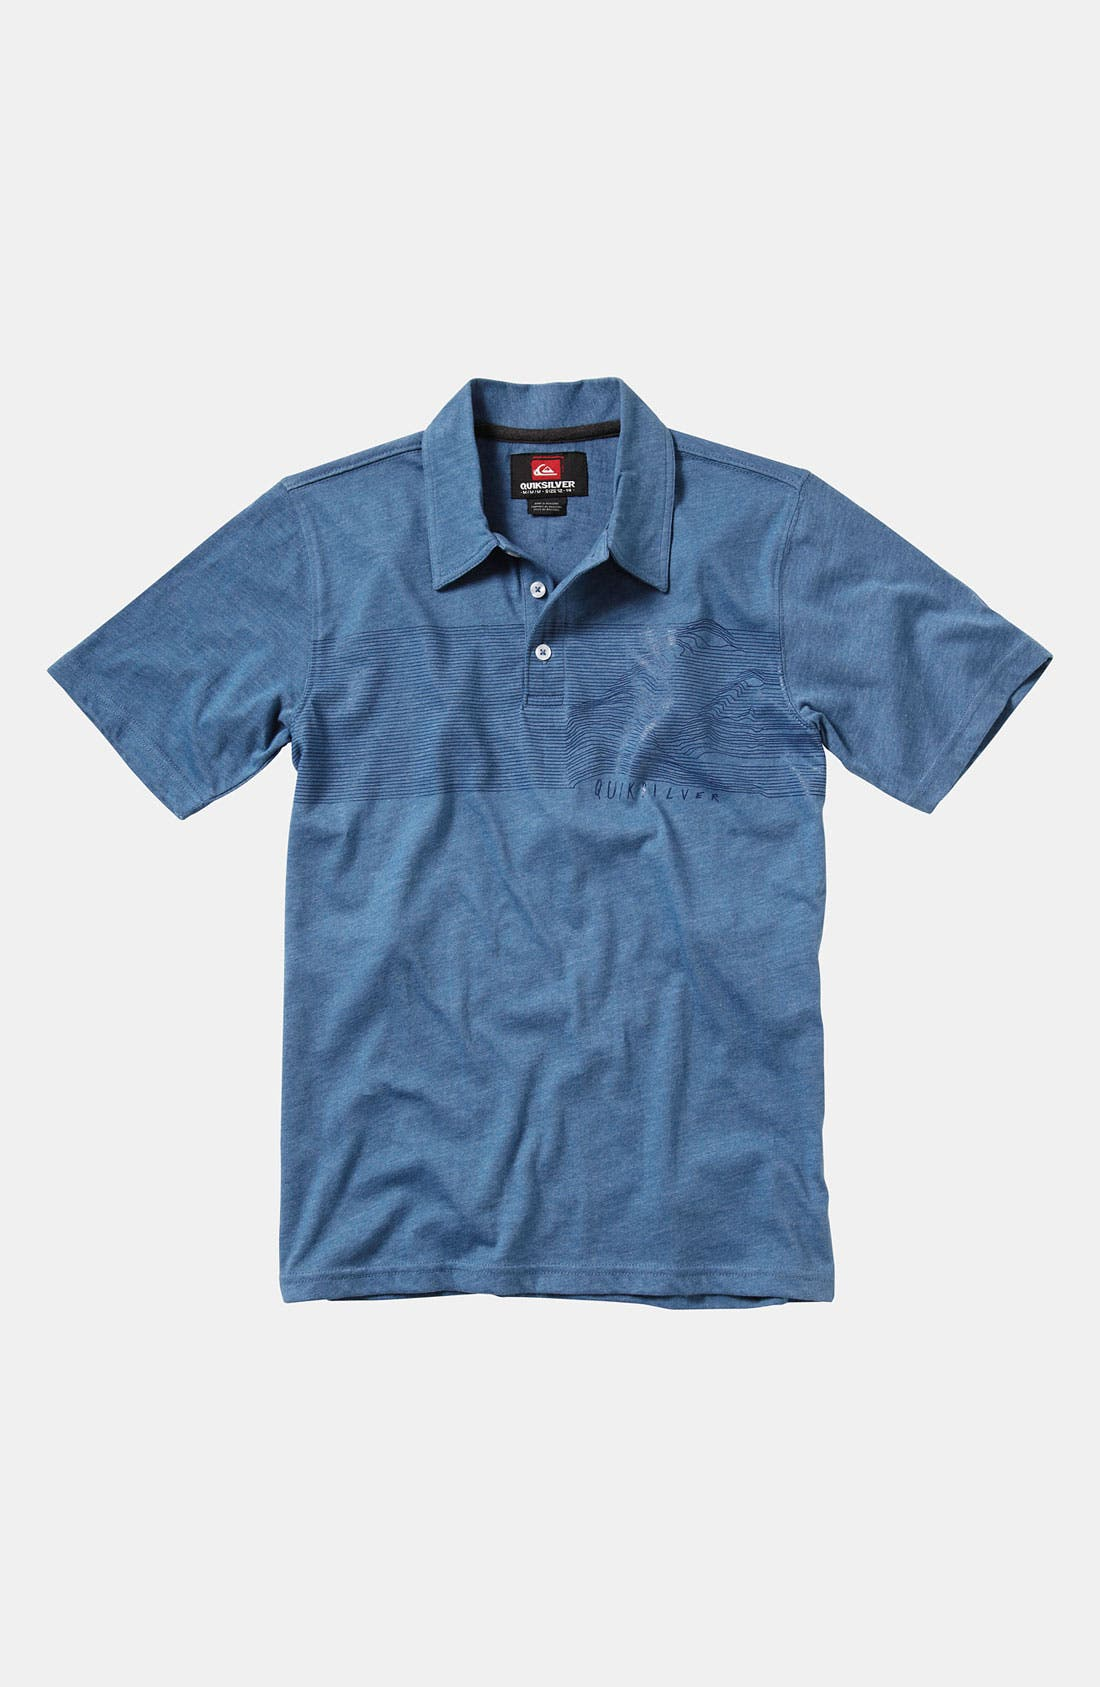 Main Image - Quiksilver 'Big Time' Polo Shirt (Big Boys)